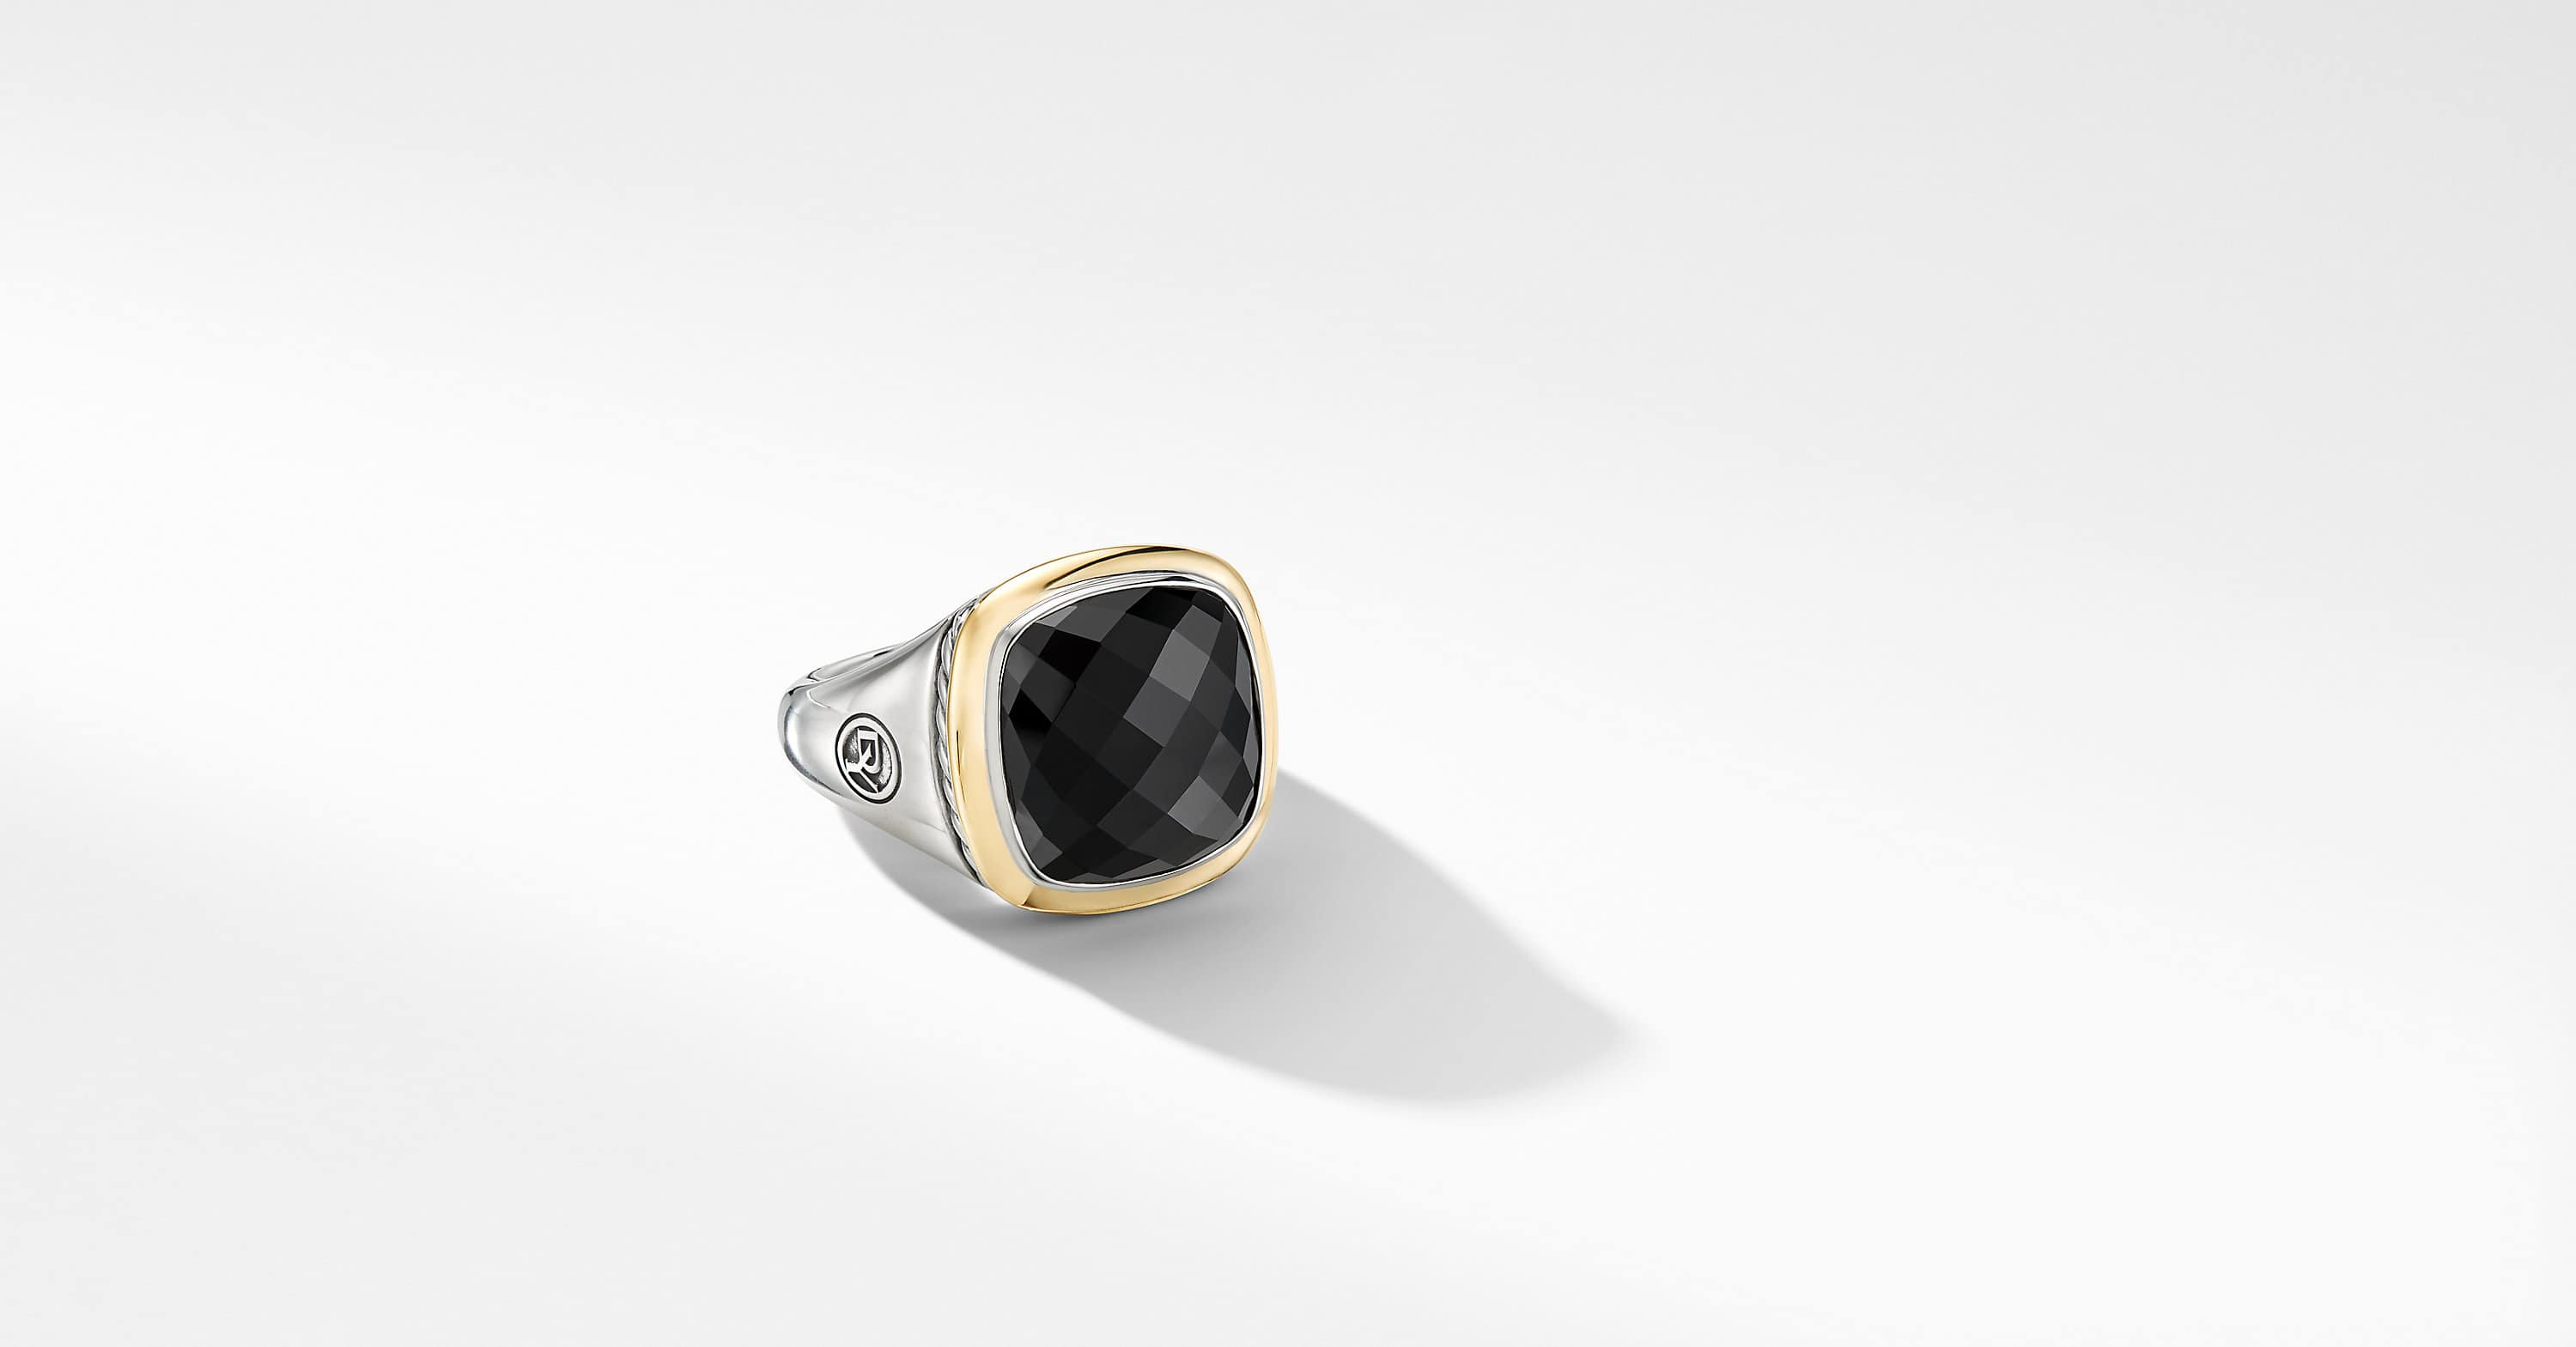 Albion Ring with 18K Yellow Gold, 14mm